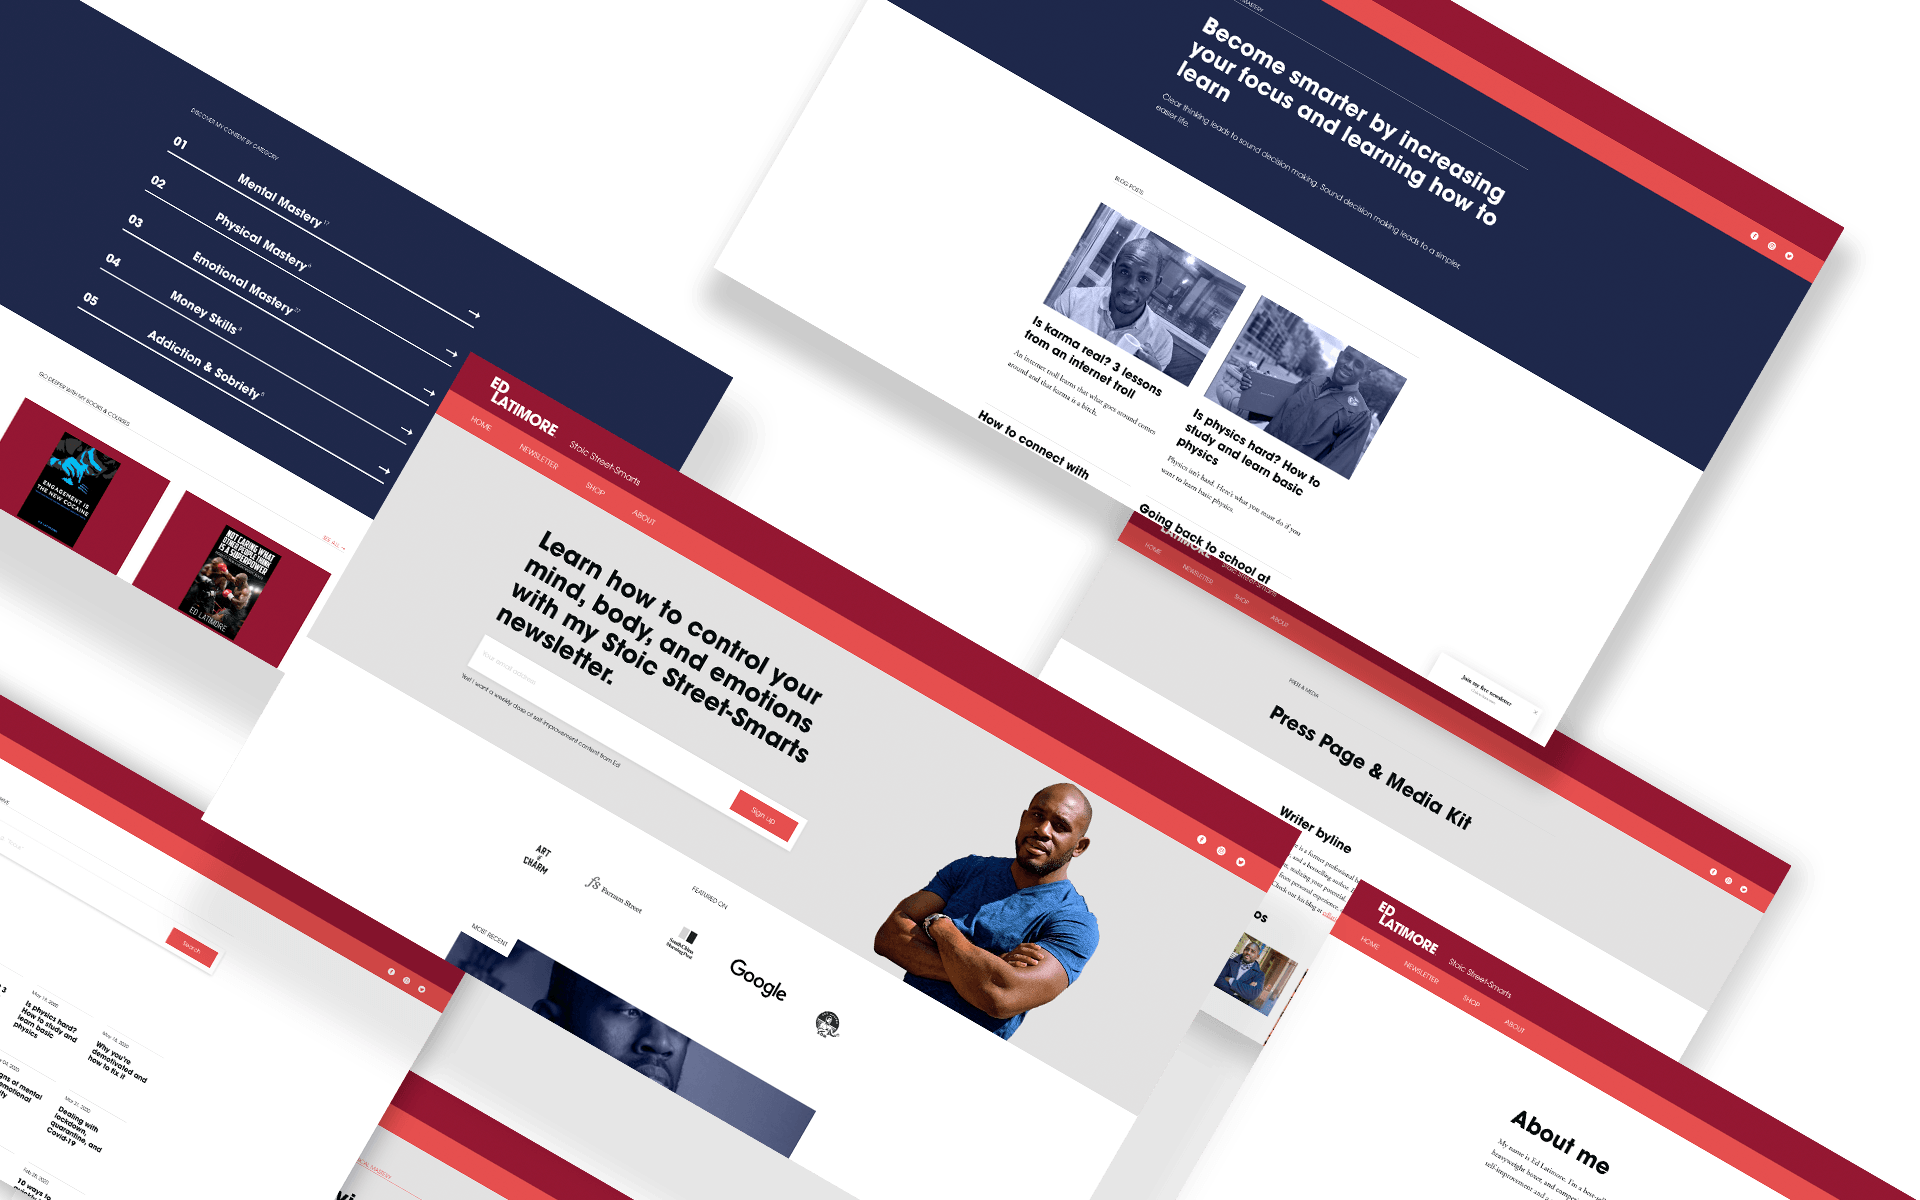 Pages from Ed Latimore's website